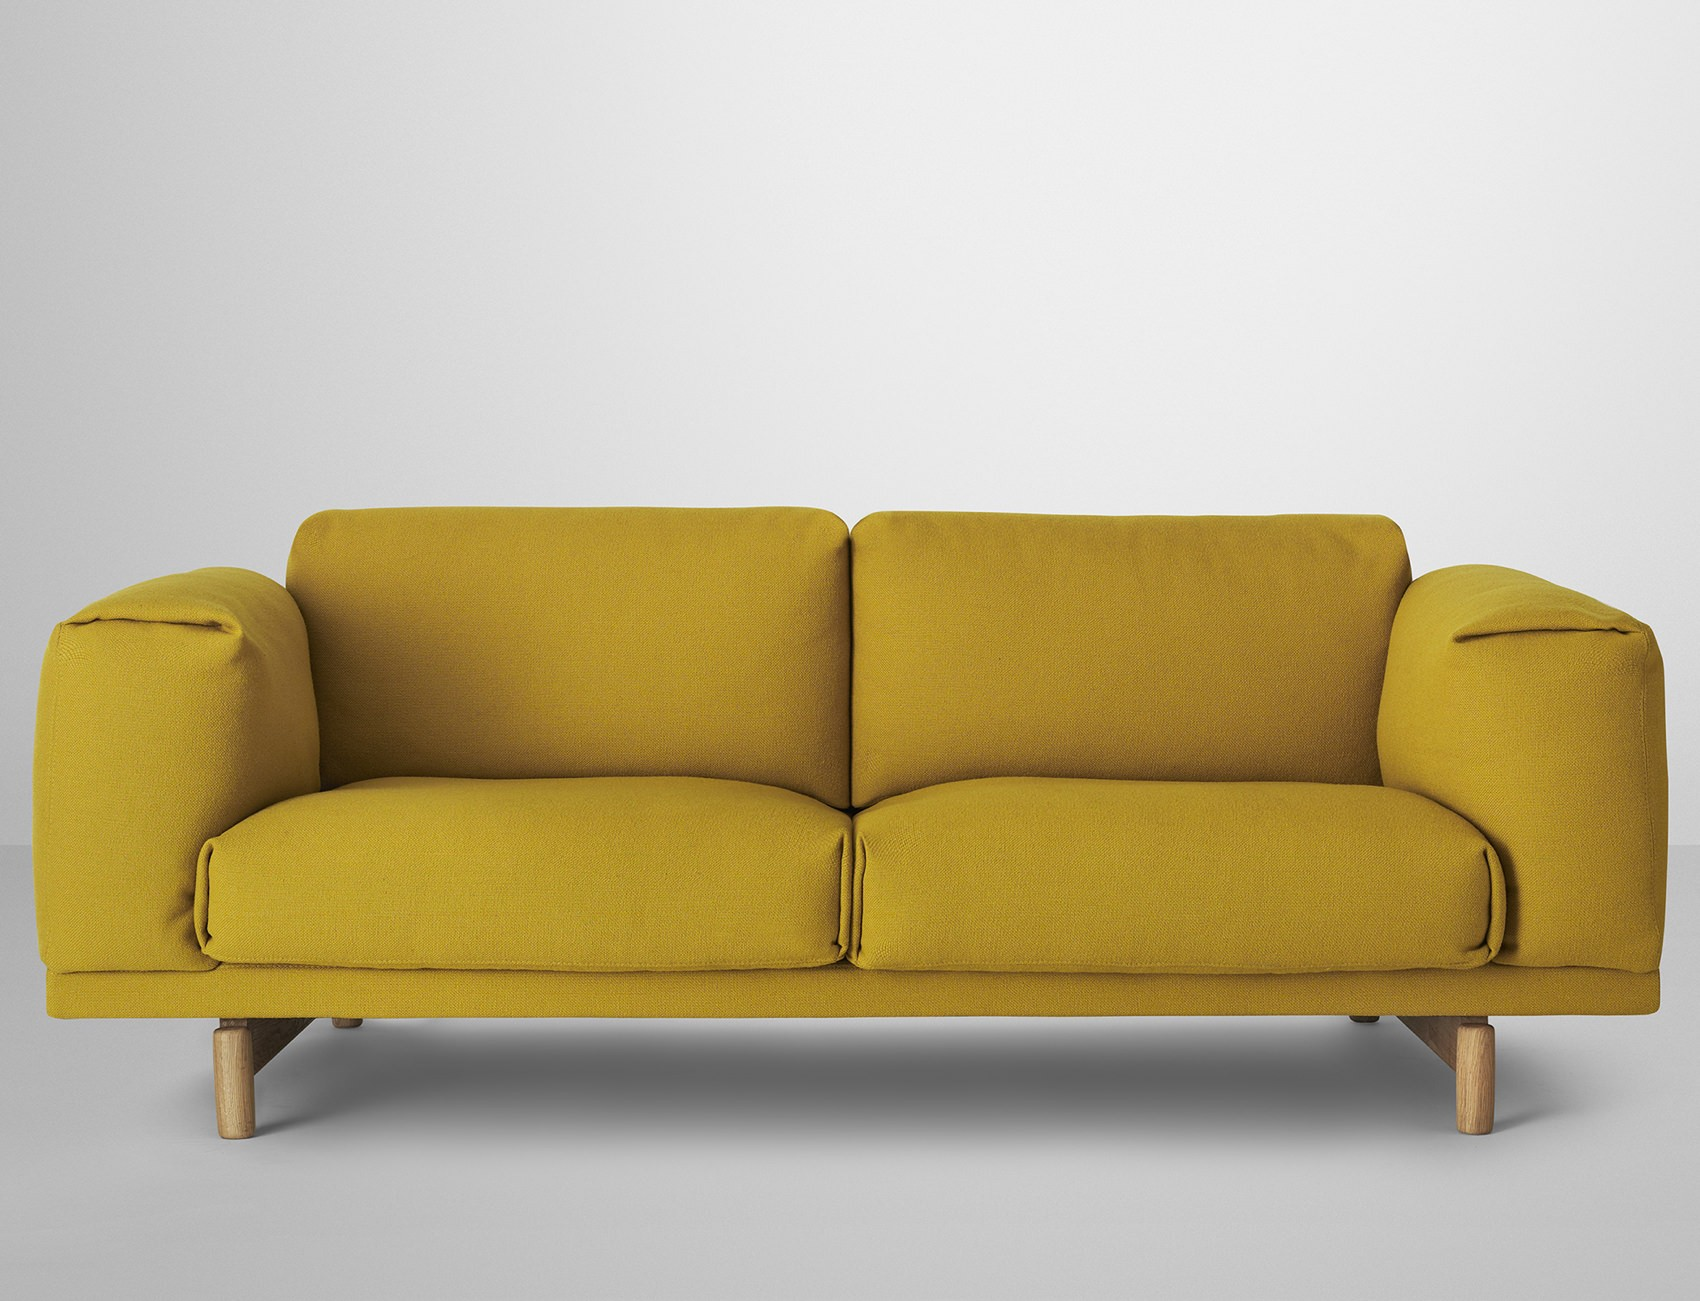 Muuto Rest Sofa : Sofa rest by muuto yellow wool fabric l h made in